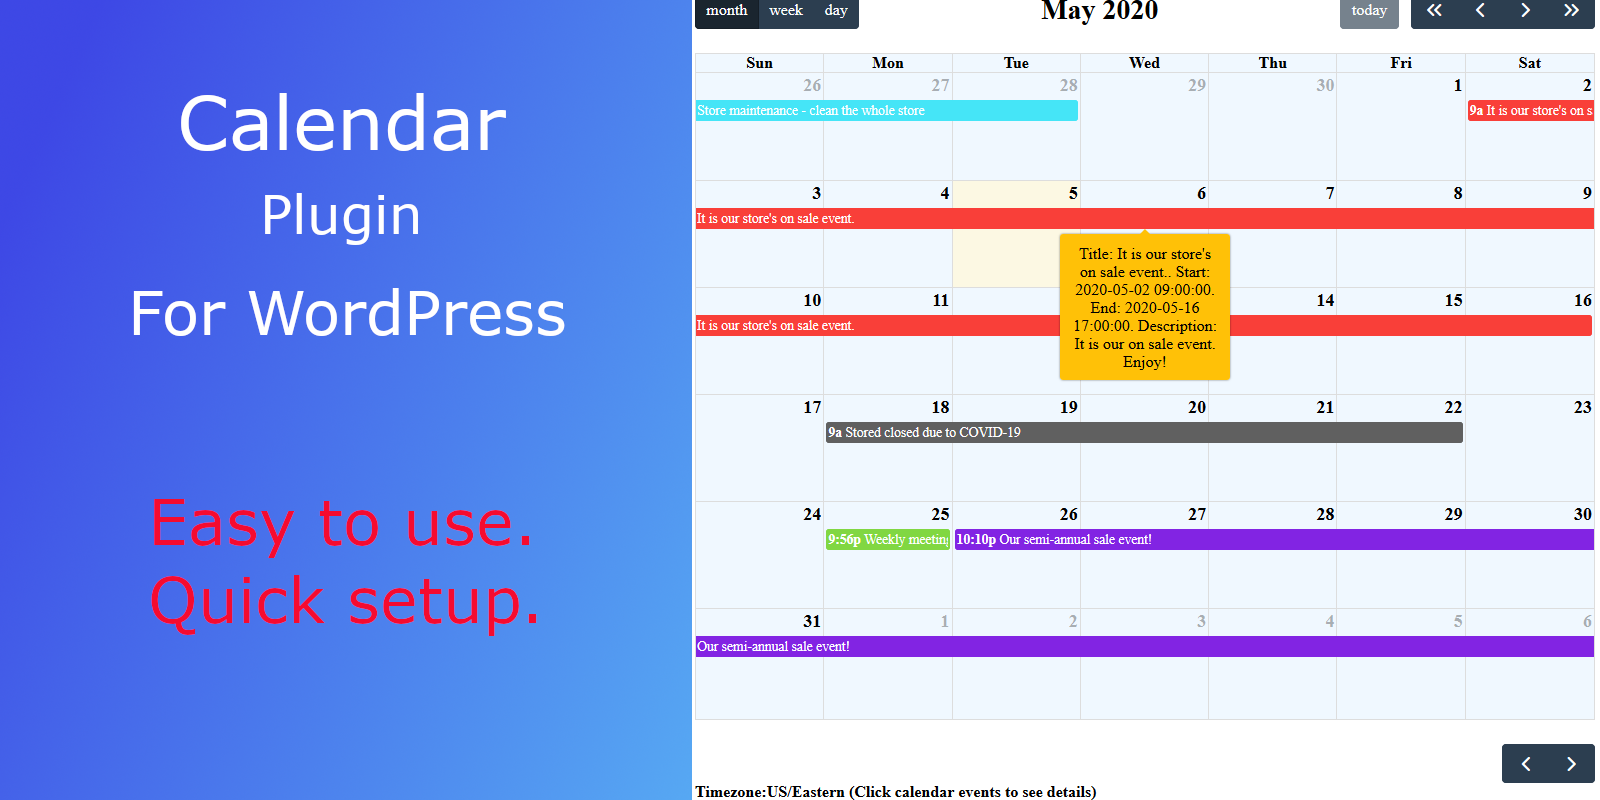 Calendar plugin for WordPress websites